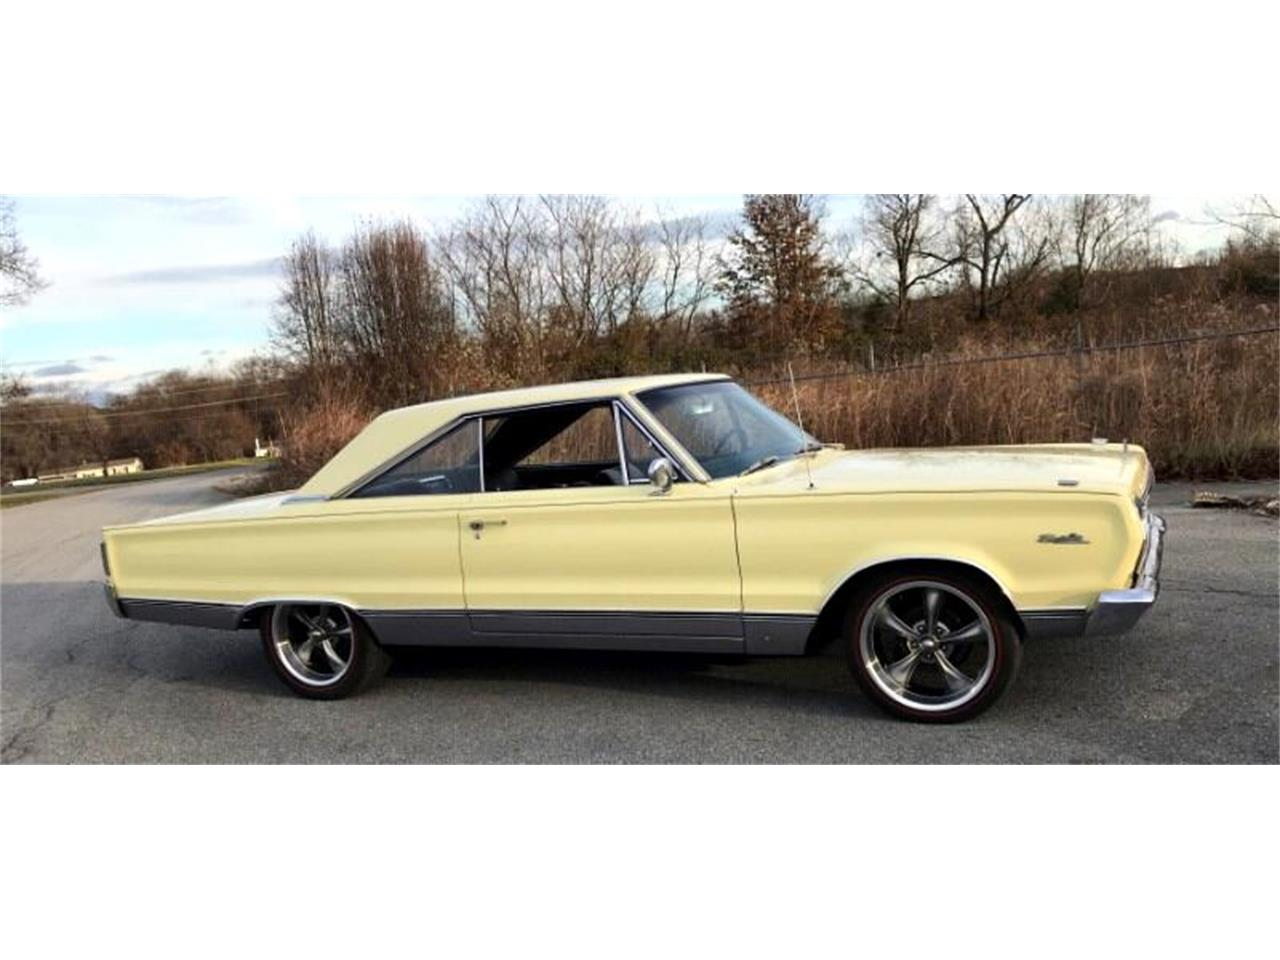 1967 Plymouth Satellite (CC-1302385) for sale in Harpers Ferry, West Virginia